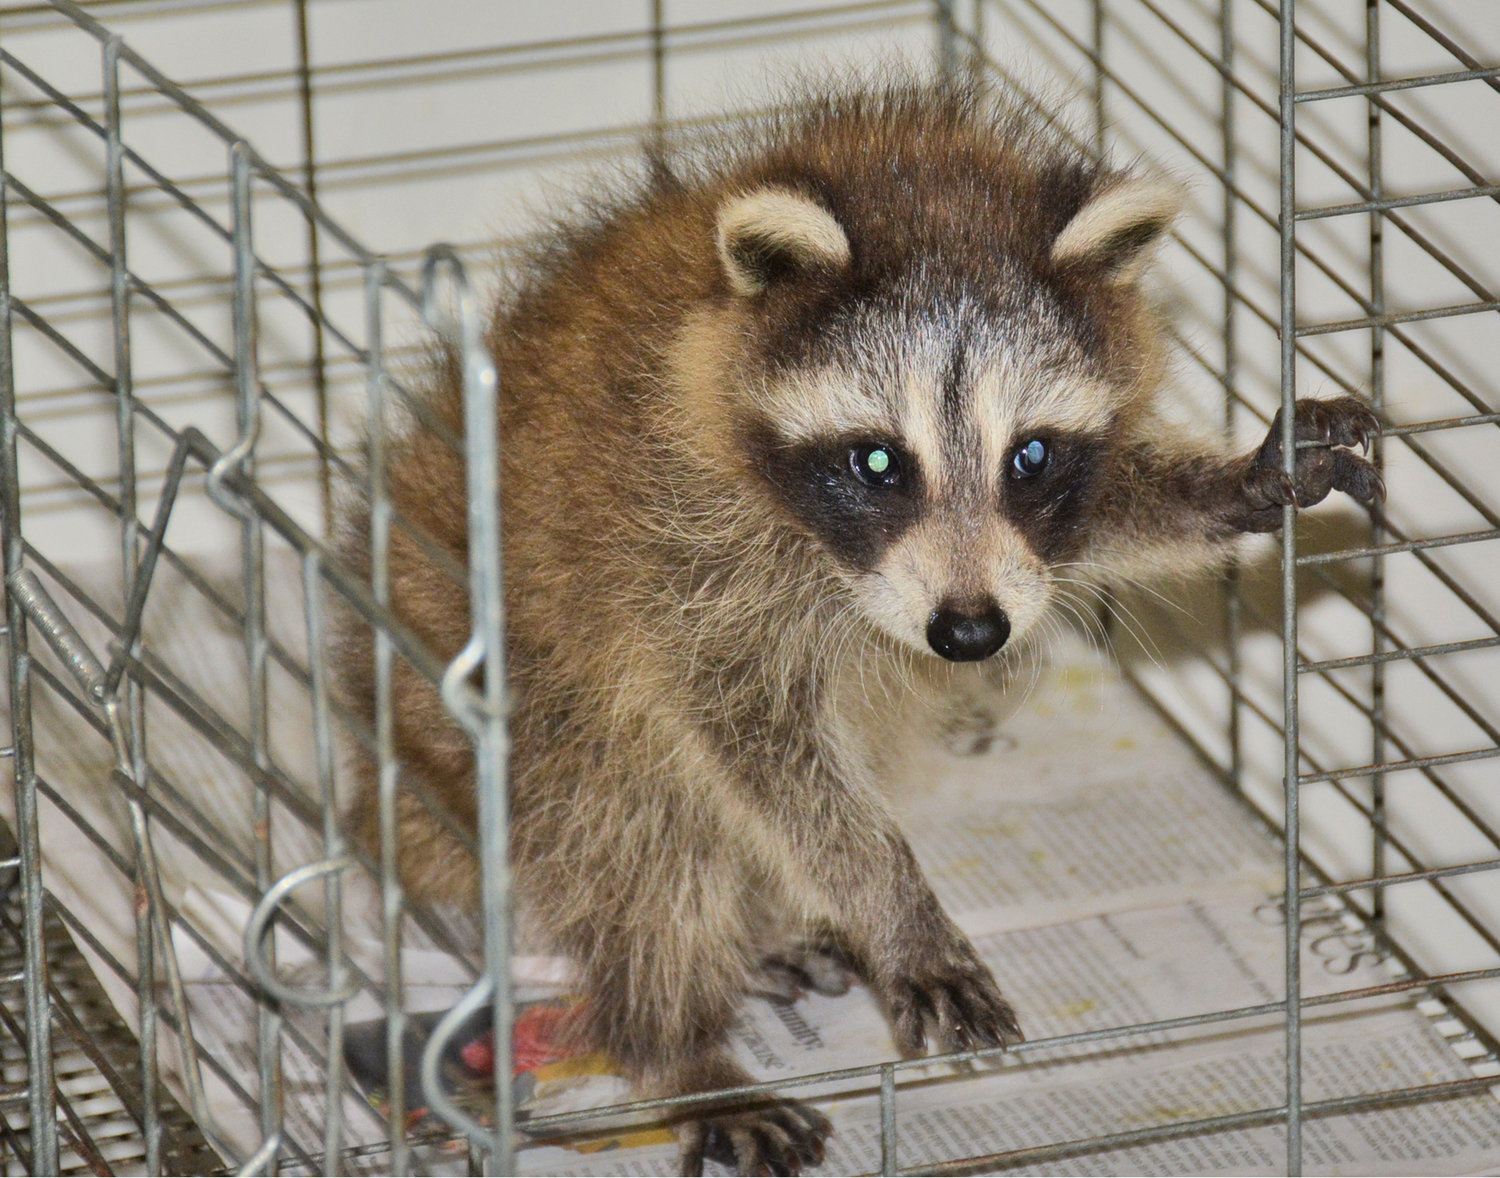 CAGEY CRITTER — This 8-10 week old raccoon kit gets used to his temporary home at the Woodhaven Wildlife Center after police brought it here following it's mothers death after being hit by a car on Fountain Street. This furry cutie  will stay with Judy Cusworth at the Woodhaven Wildlife Center in Chadwicks until it is released in early August.